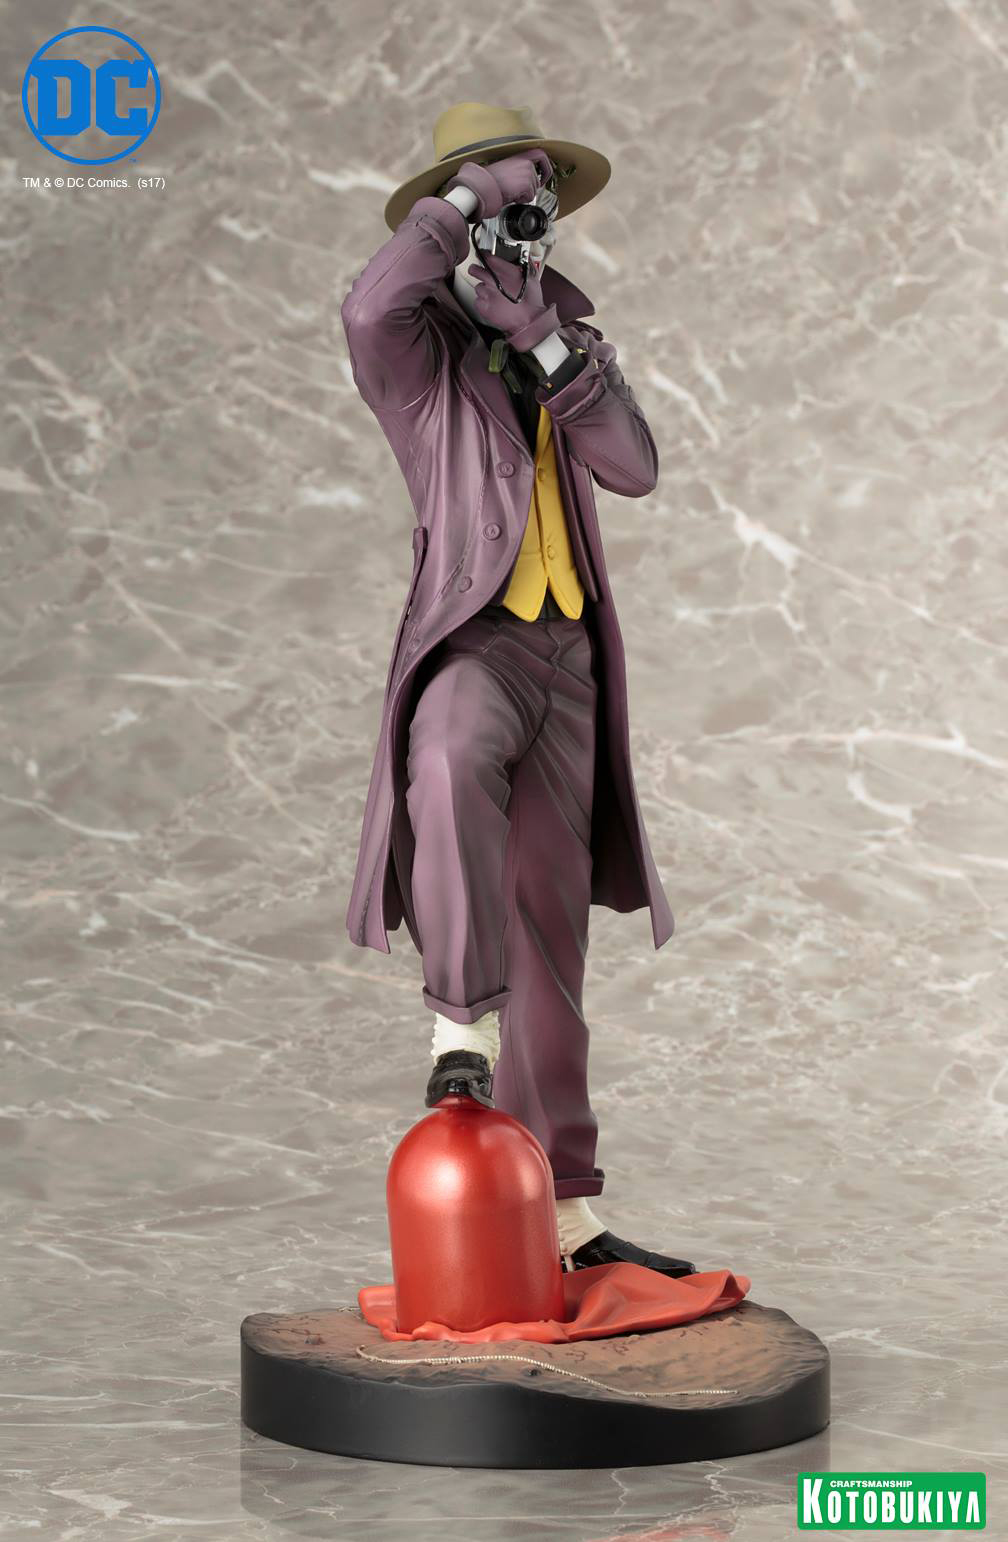 kotobukiya-joker-the-killing-joke-statue-3